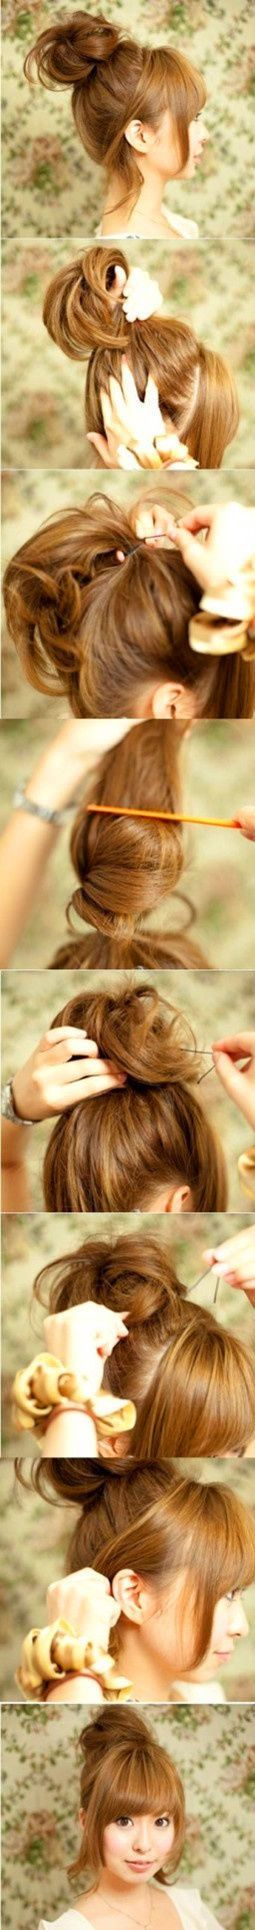 Super cute.HINT: those U shaped hair pins..bend the ends back on themselves-so they ALMOST look like an M, but only bend the tips of the pins- THEN insert bent U pin into bun, or updo…THIS will insure that U pin is NOT coming out! Those U pins are so thin and tend to slide out easily, this way they dont…just a hint from a hairdresser!